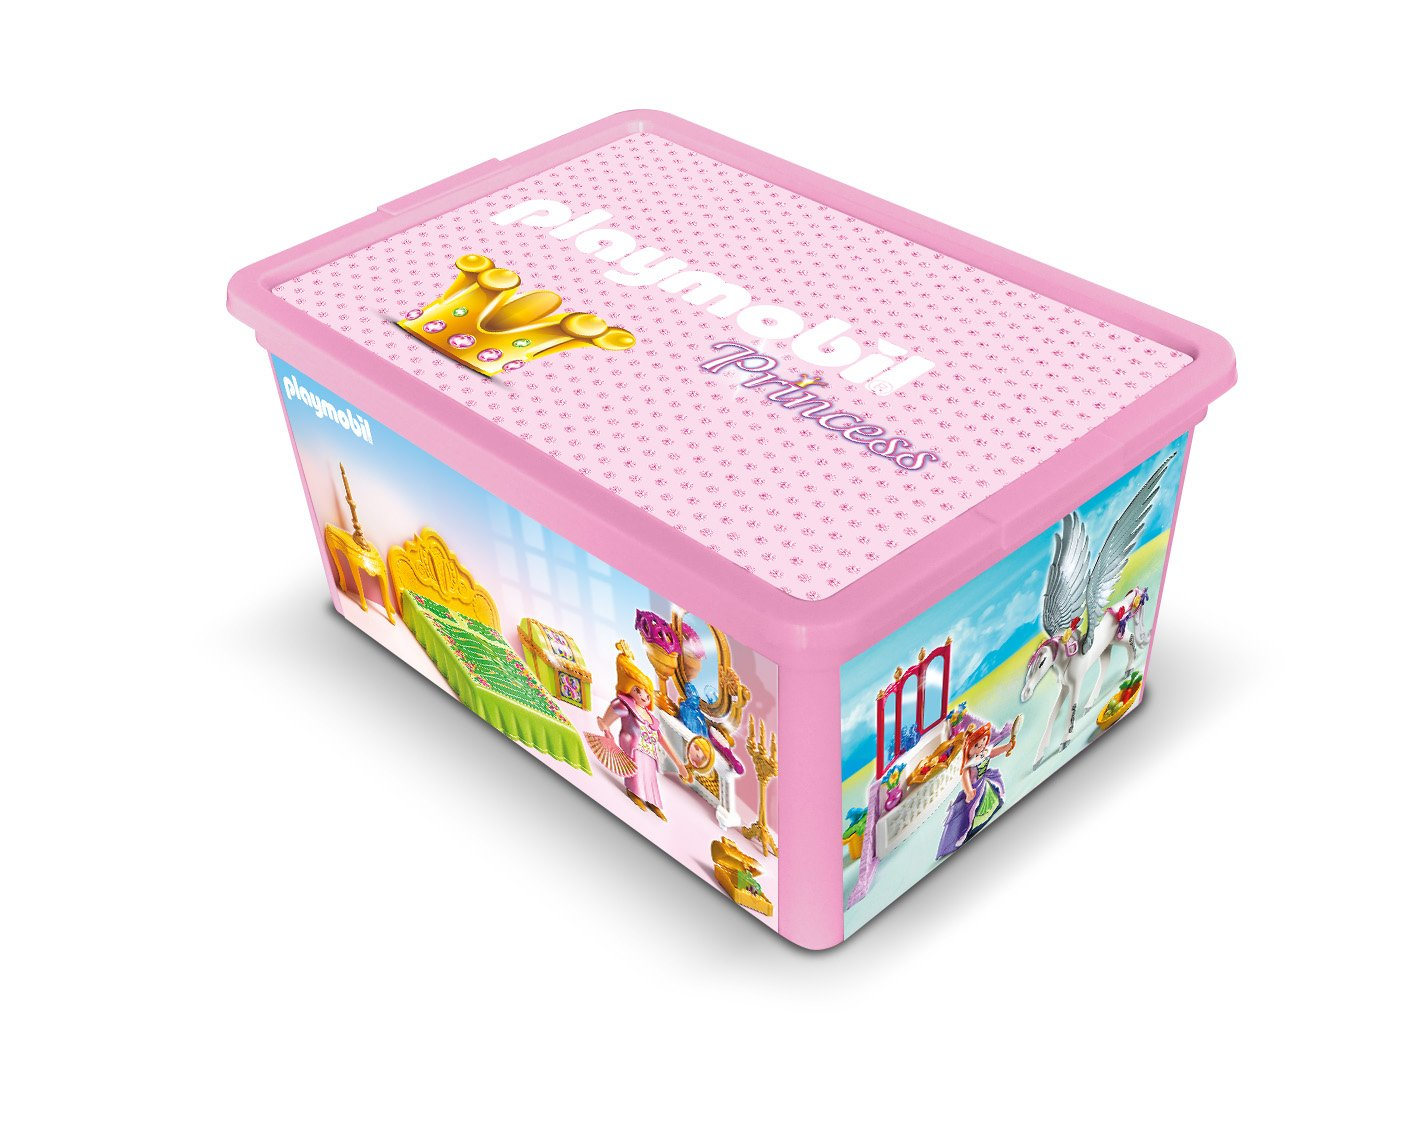 PLAYMOBIL® - 064754 - Princess Storage Box - 6 litres